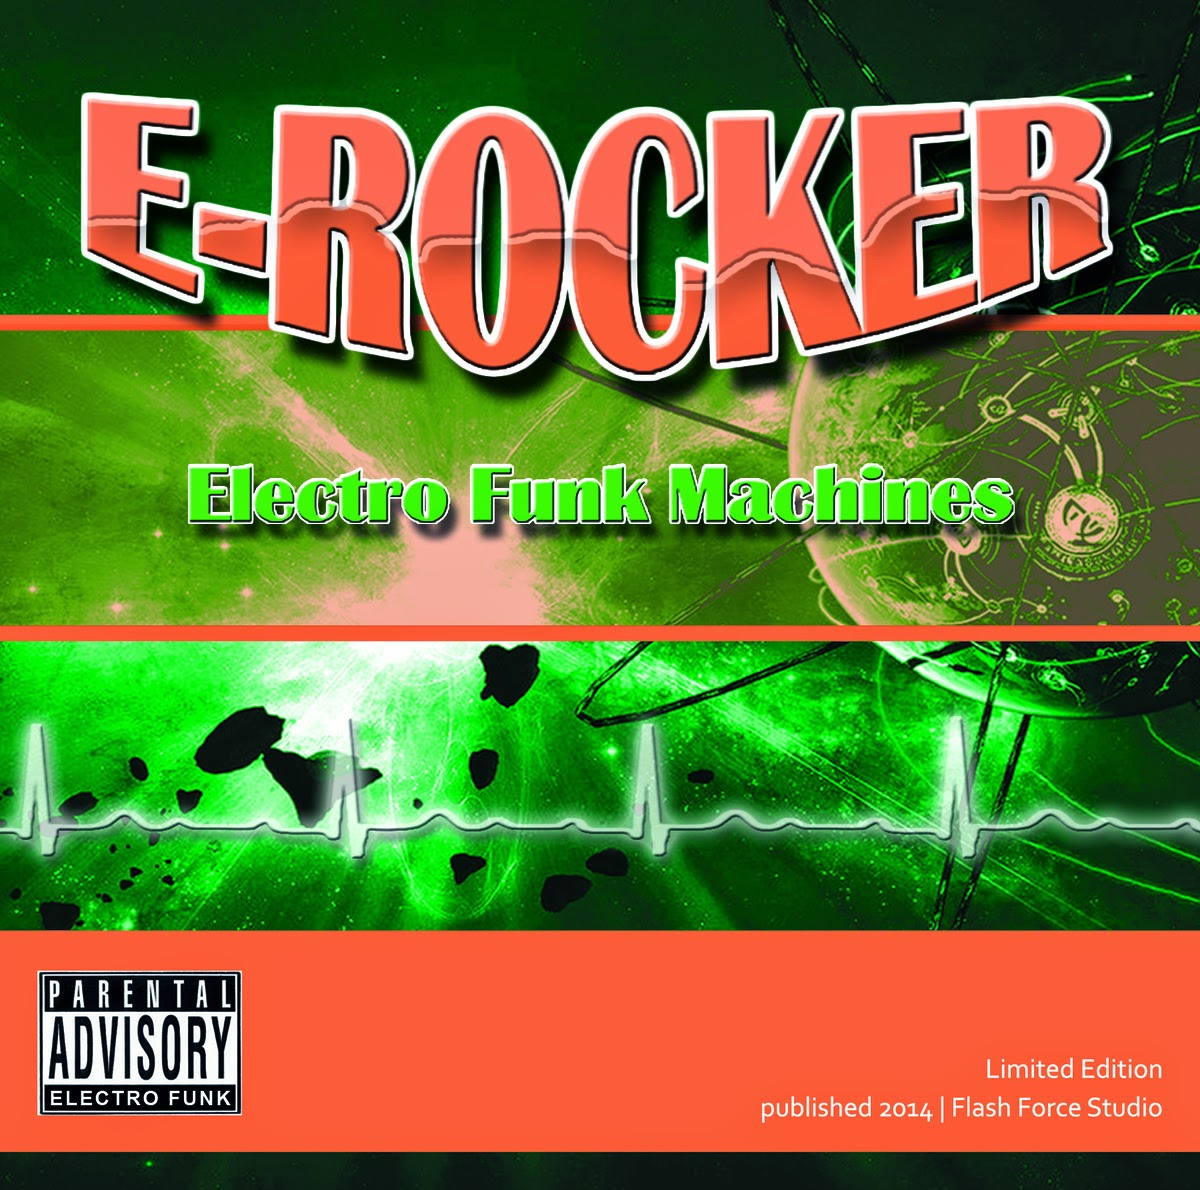 E-Rocker - Electro Funk Machines (CD, Album, 2014)(Flash Force Records)